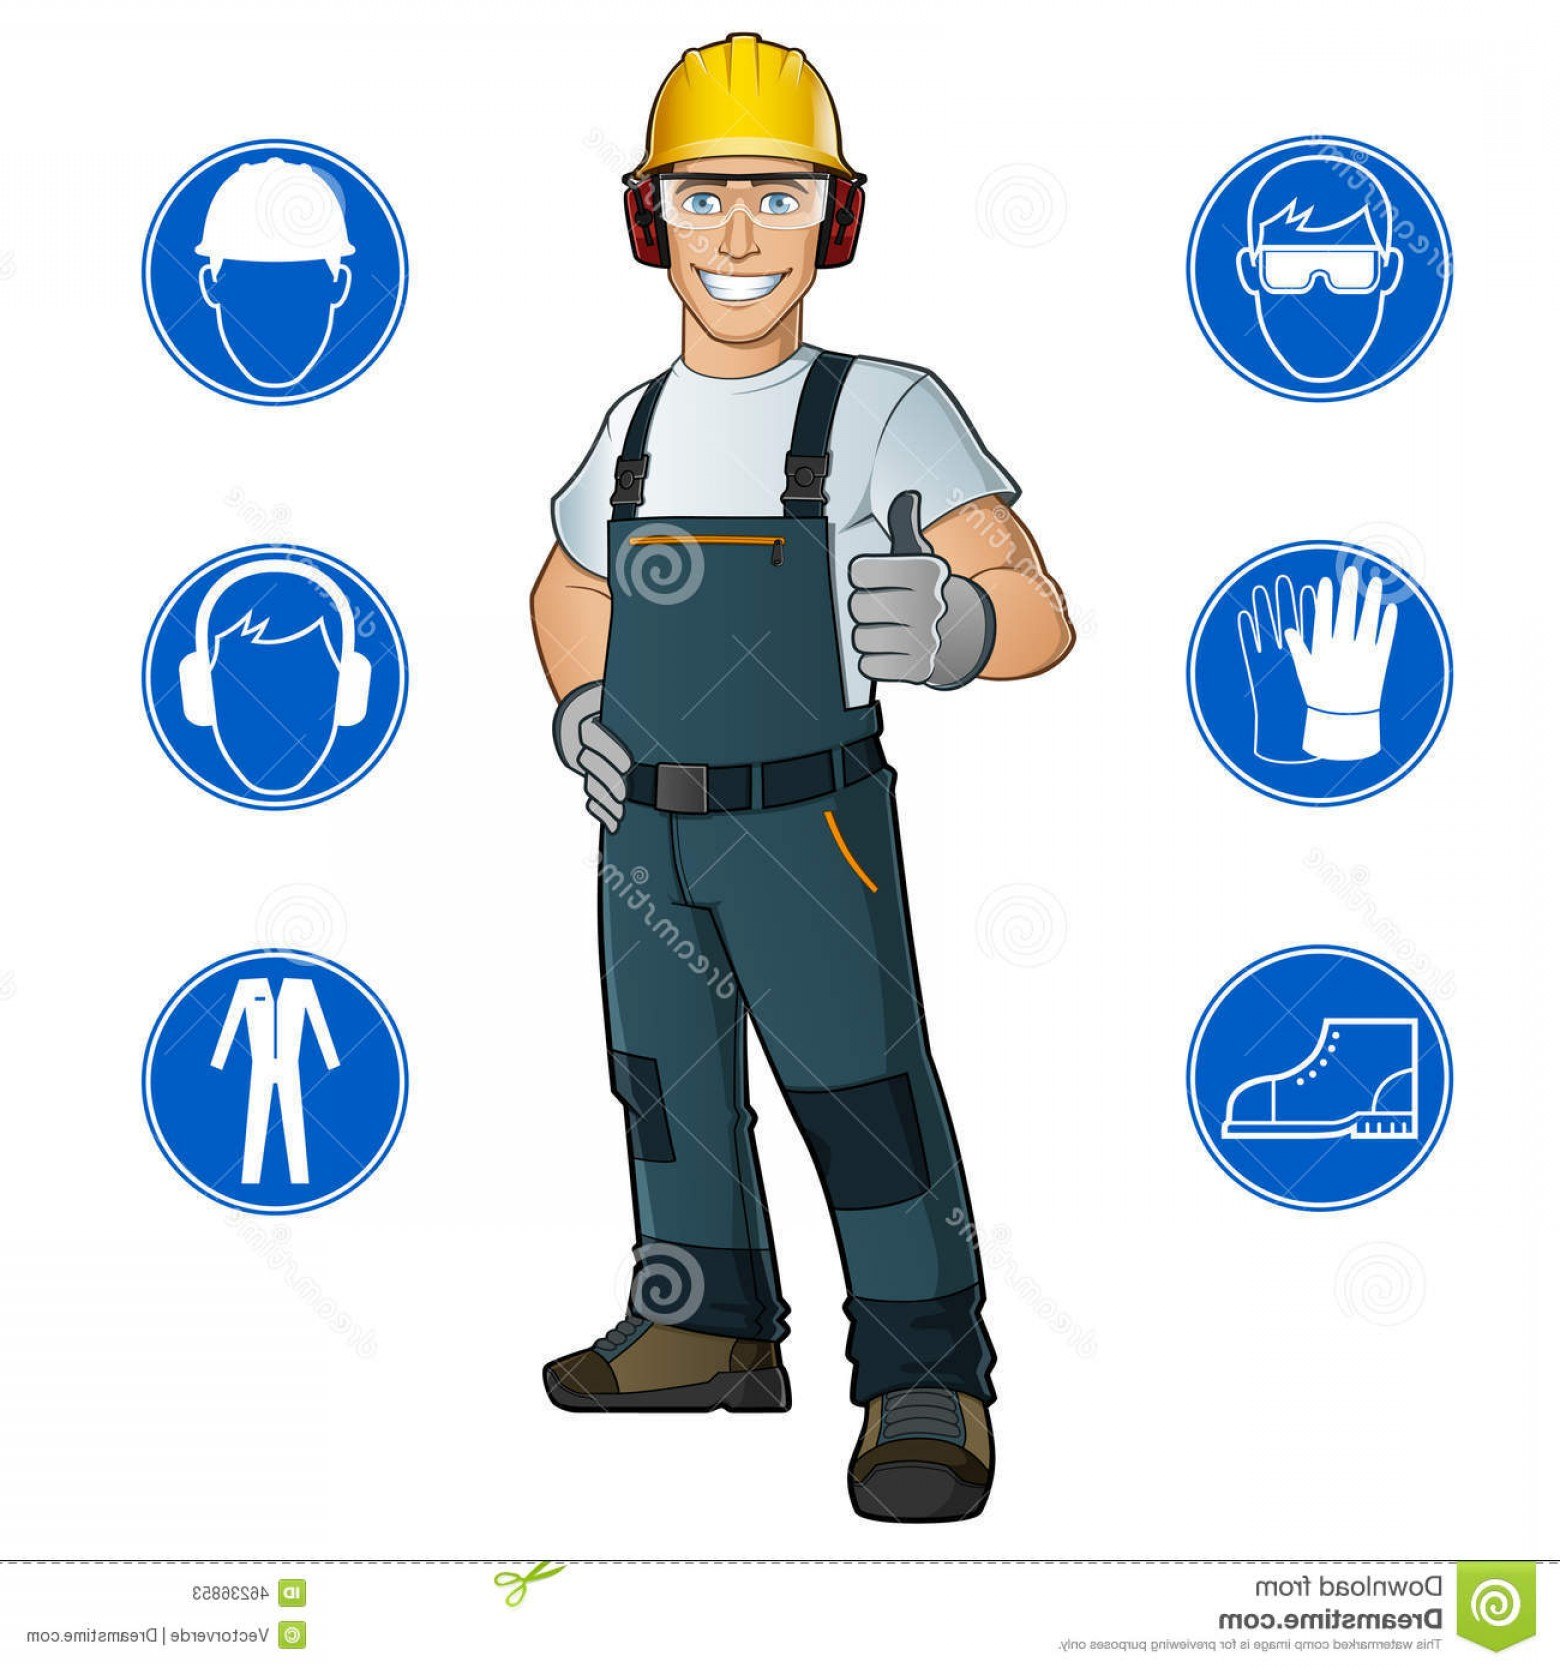 Construction Safety Goggles Vector: Stock Illustration Man Dressed Work Clothes Helmet Goggles Gloves Safety Signs Image